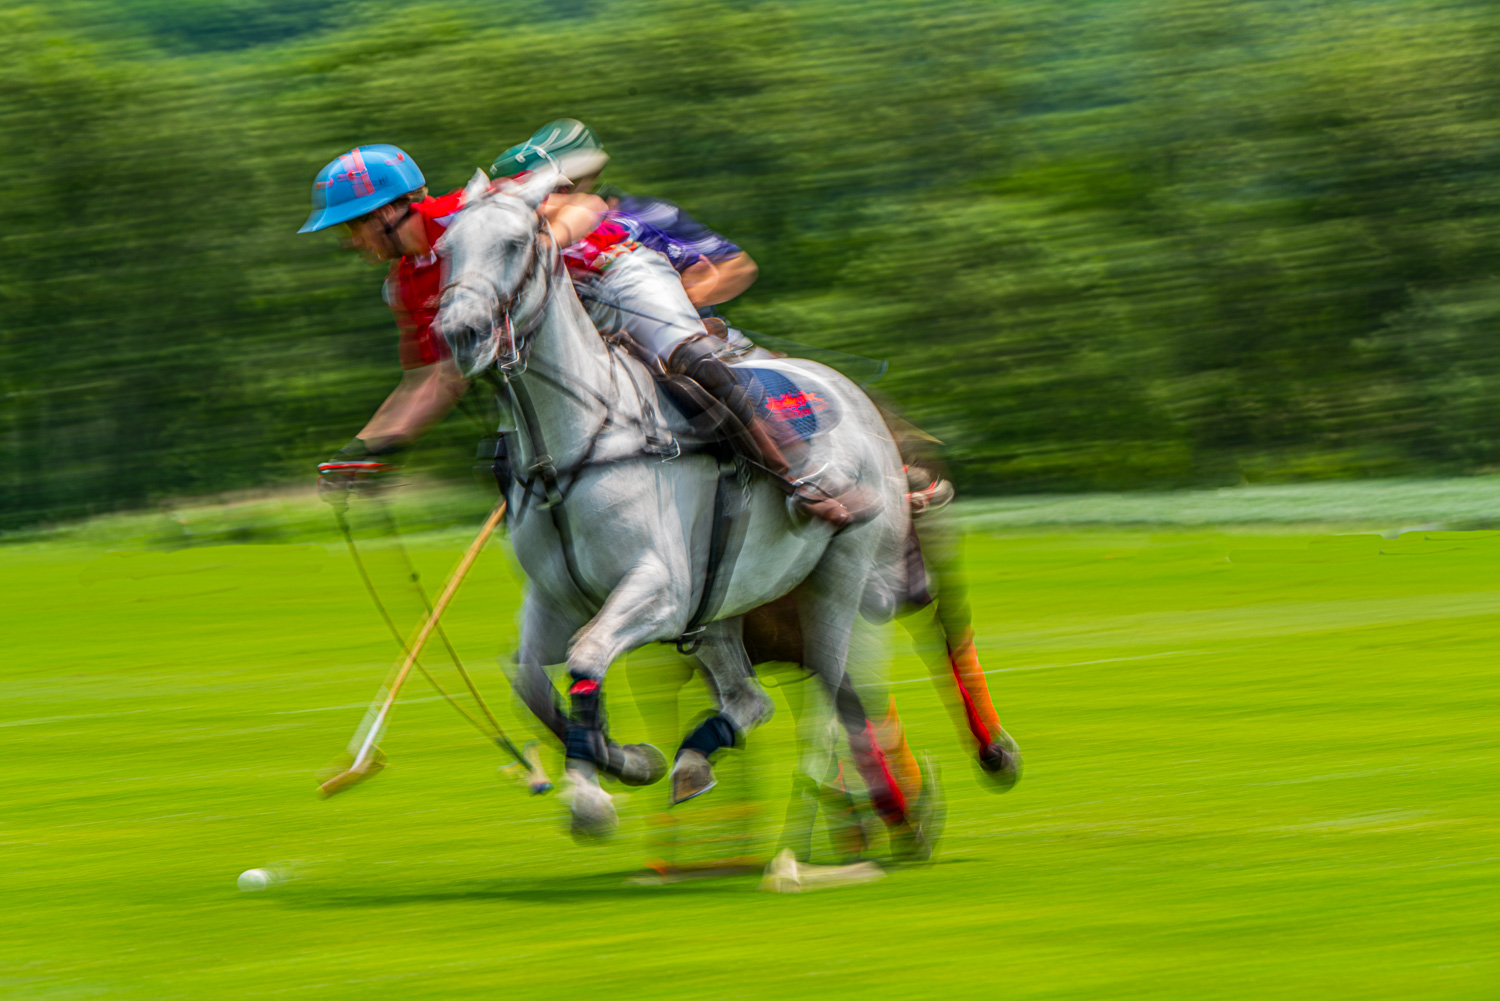 Watch the mallot flex as the polo player is about to hit the ball at the mashomack polo club in Pine Plains, ny.  The action blur creats a sense of speed and movement..jpg